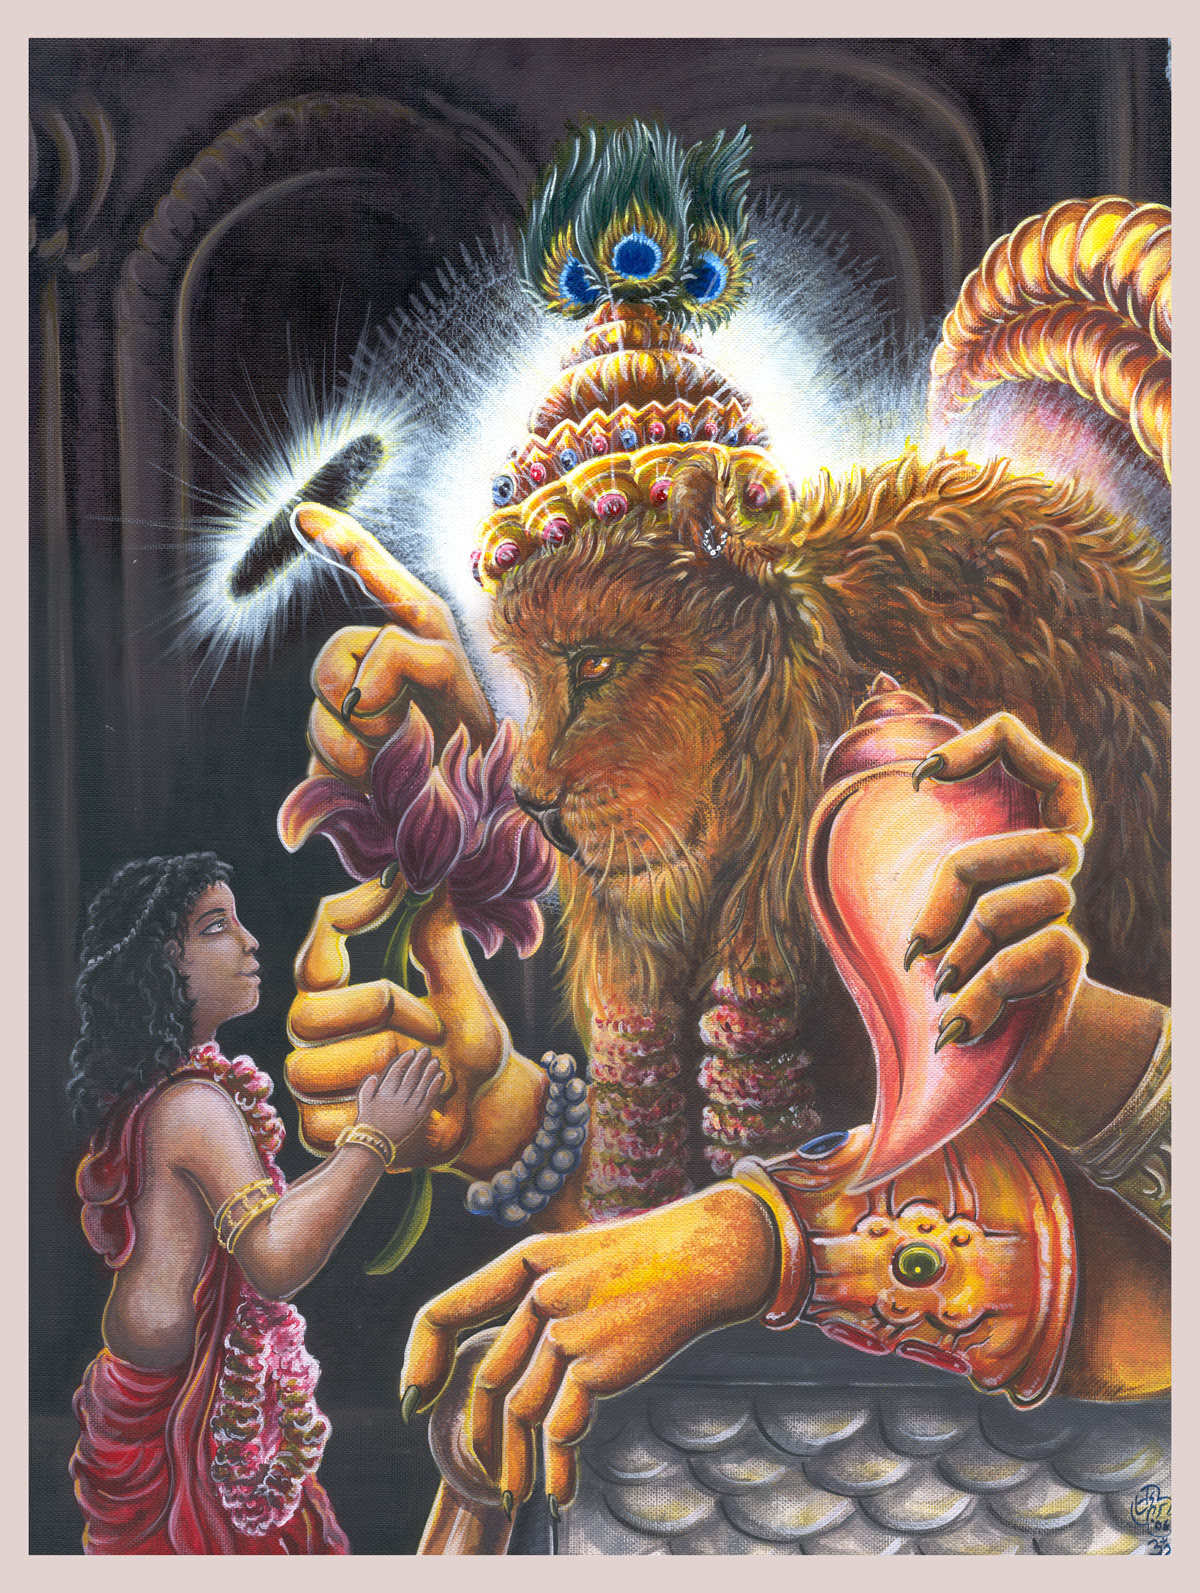 http://slgpsi.files.wordpress.com/2012/01/bless_you__prahlada_by_leksbronks.jpg